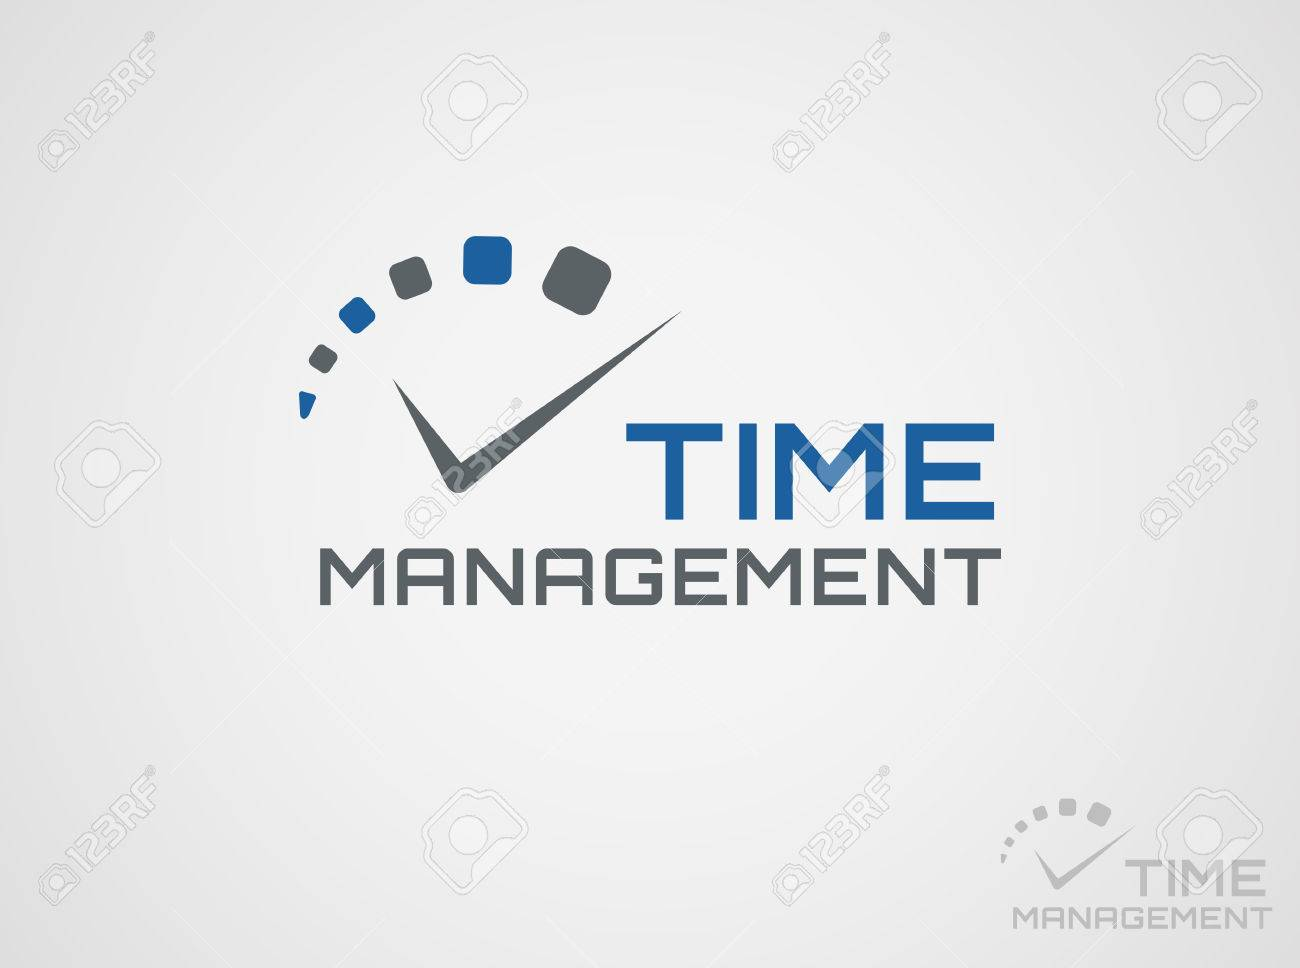 Time management template. Concept icon isolated on white background. Vector symbol. - 53553917